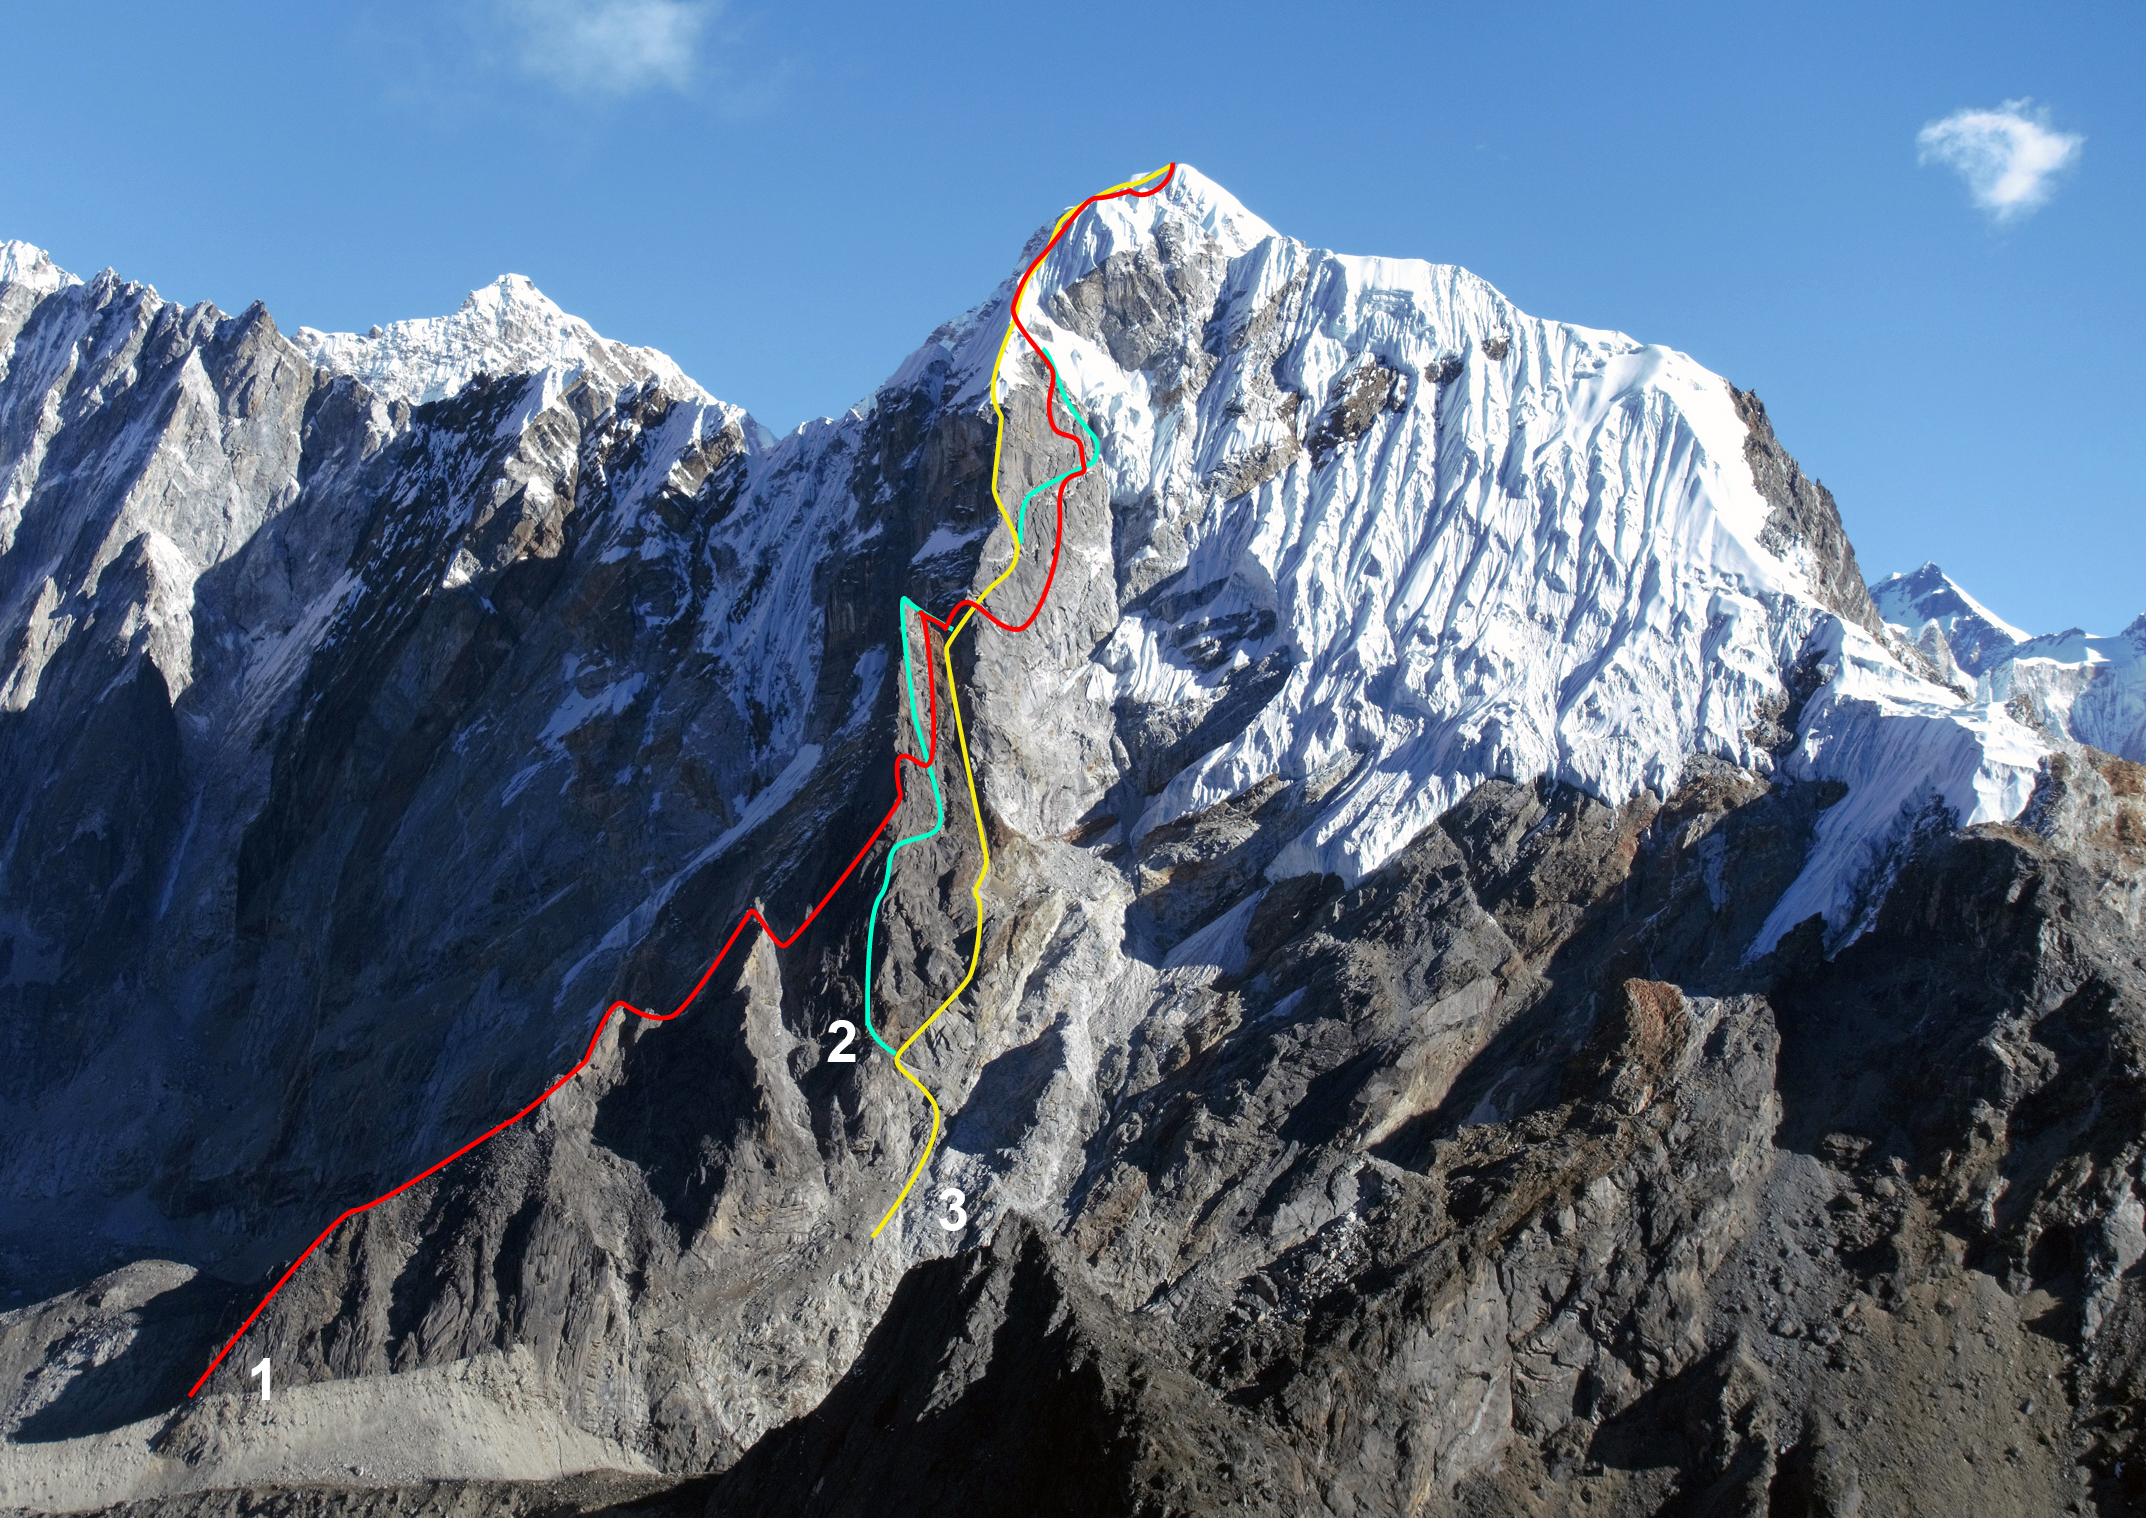 The southwest pillar of Lobuche East (6,090m), showing (1) Hiding in Plain Sight (2017), probably similar to the 1995 Spanish route; (2) 2018 French route, Le Quatuor à Cordes. (3) 1991 American-Nepalese Route. The normal route up the southeast ridge follows the right skyline, though most parties stop at the foresummit (first confirmed ascent in 1984 by American-Nepalese team, though possibly Japanese in 1979).